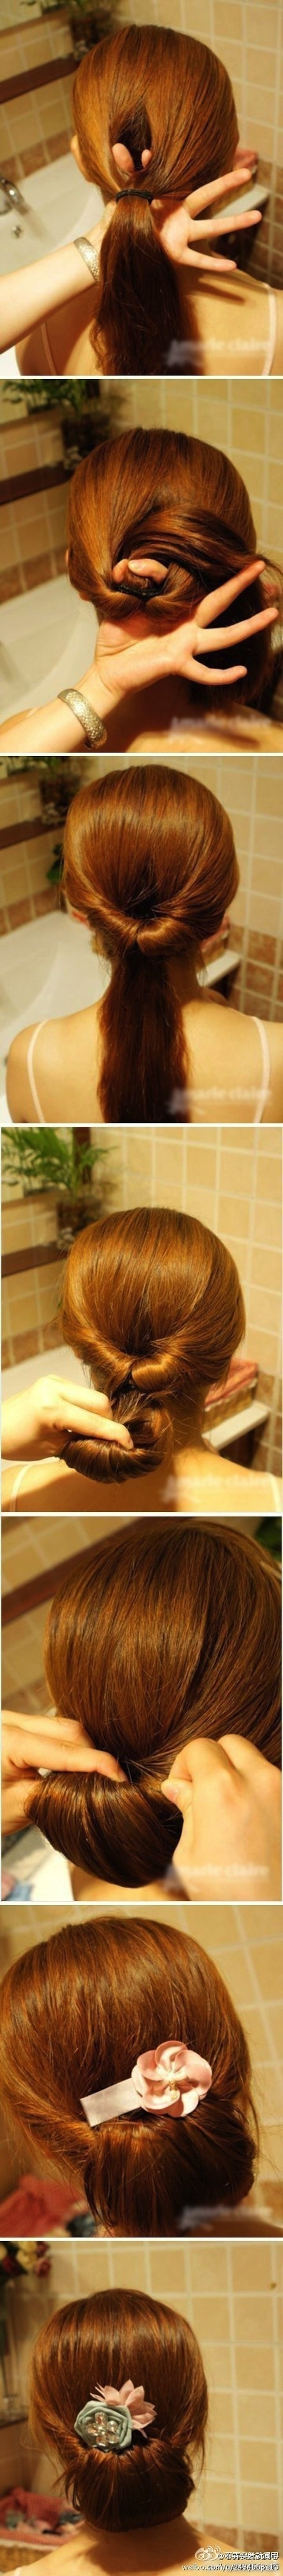 Hair How Tos 5 Chic Diy Updos To Try